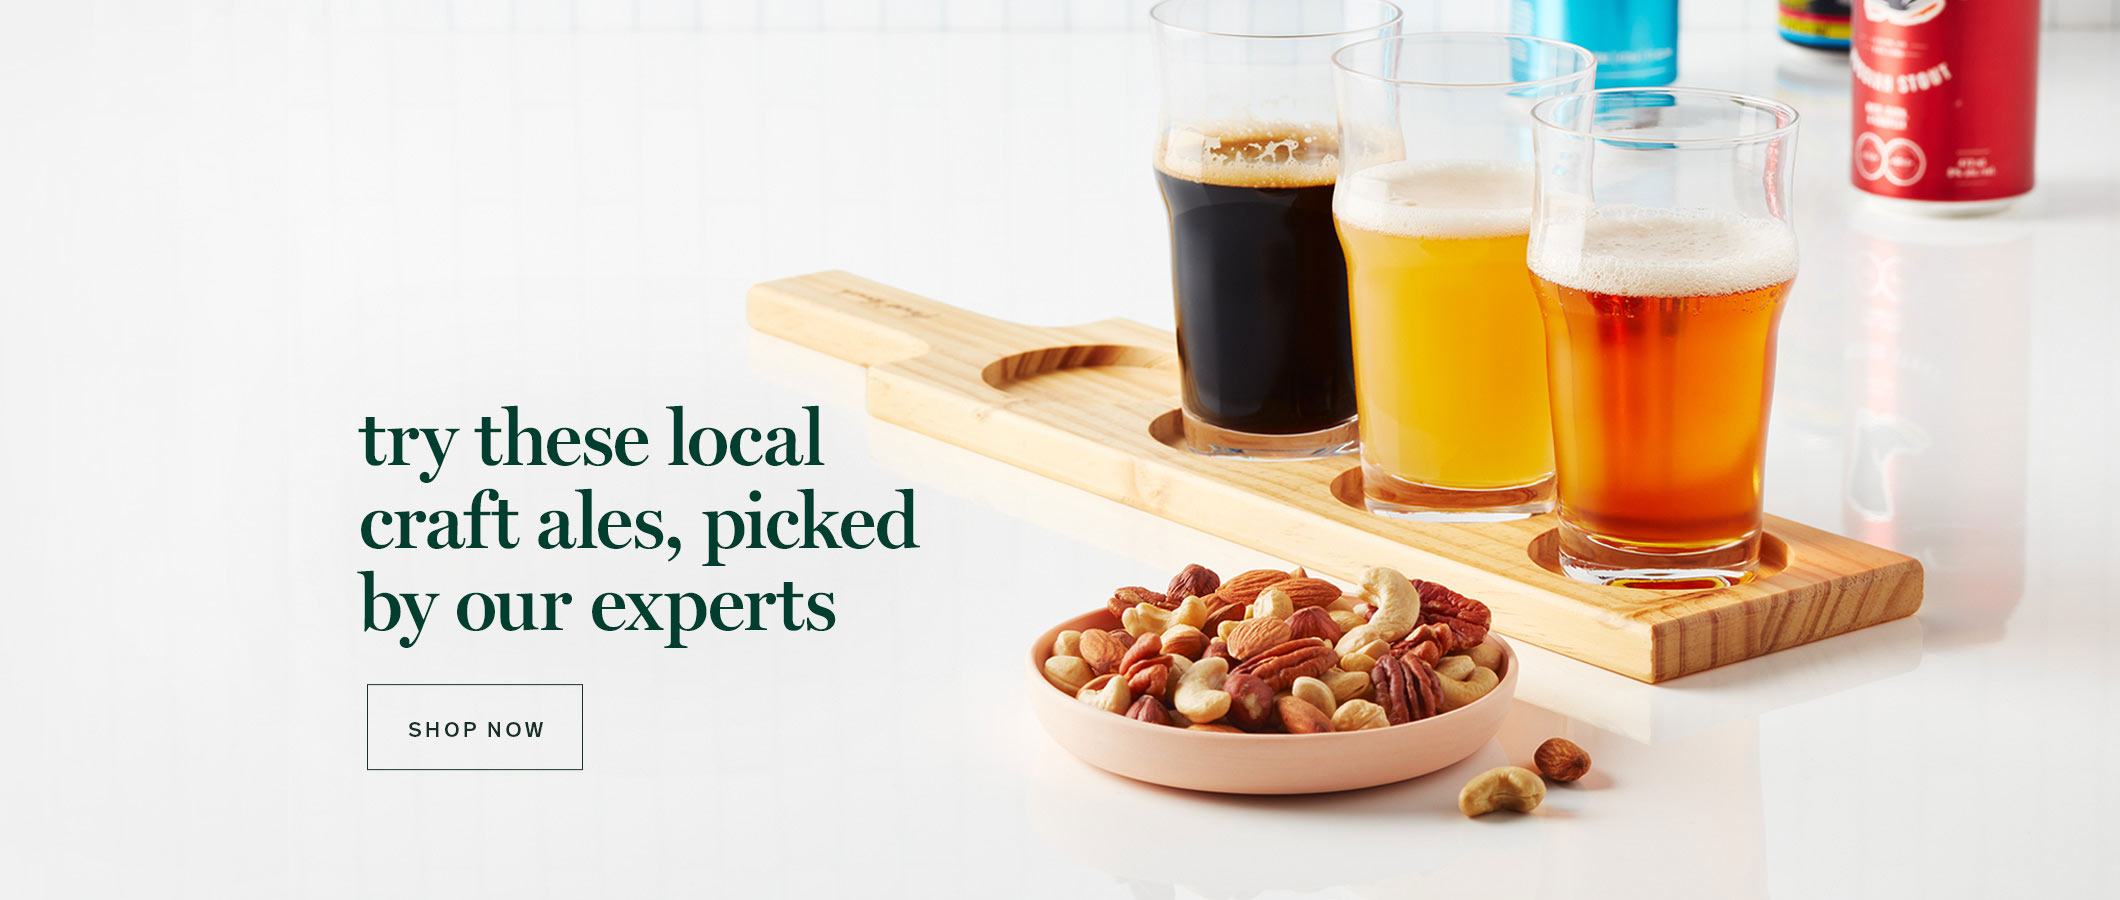 try these local craft ales, picked by our expert.  SHOP NOW